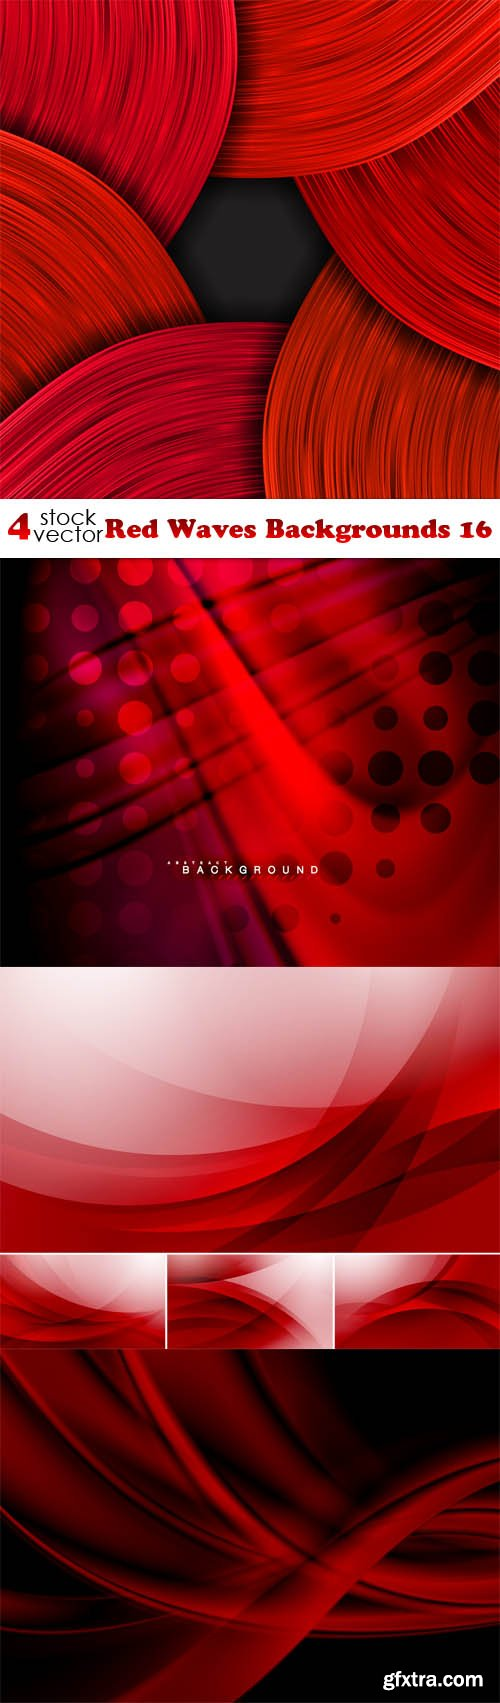 Vectors - Red Waves Backgrounds 16